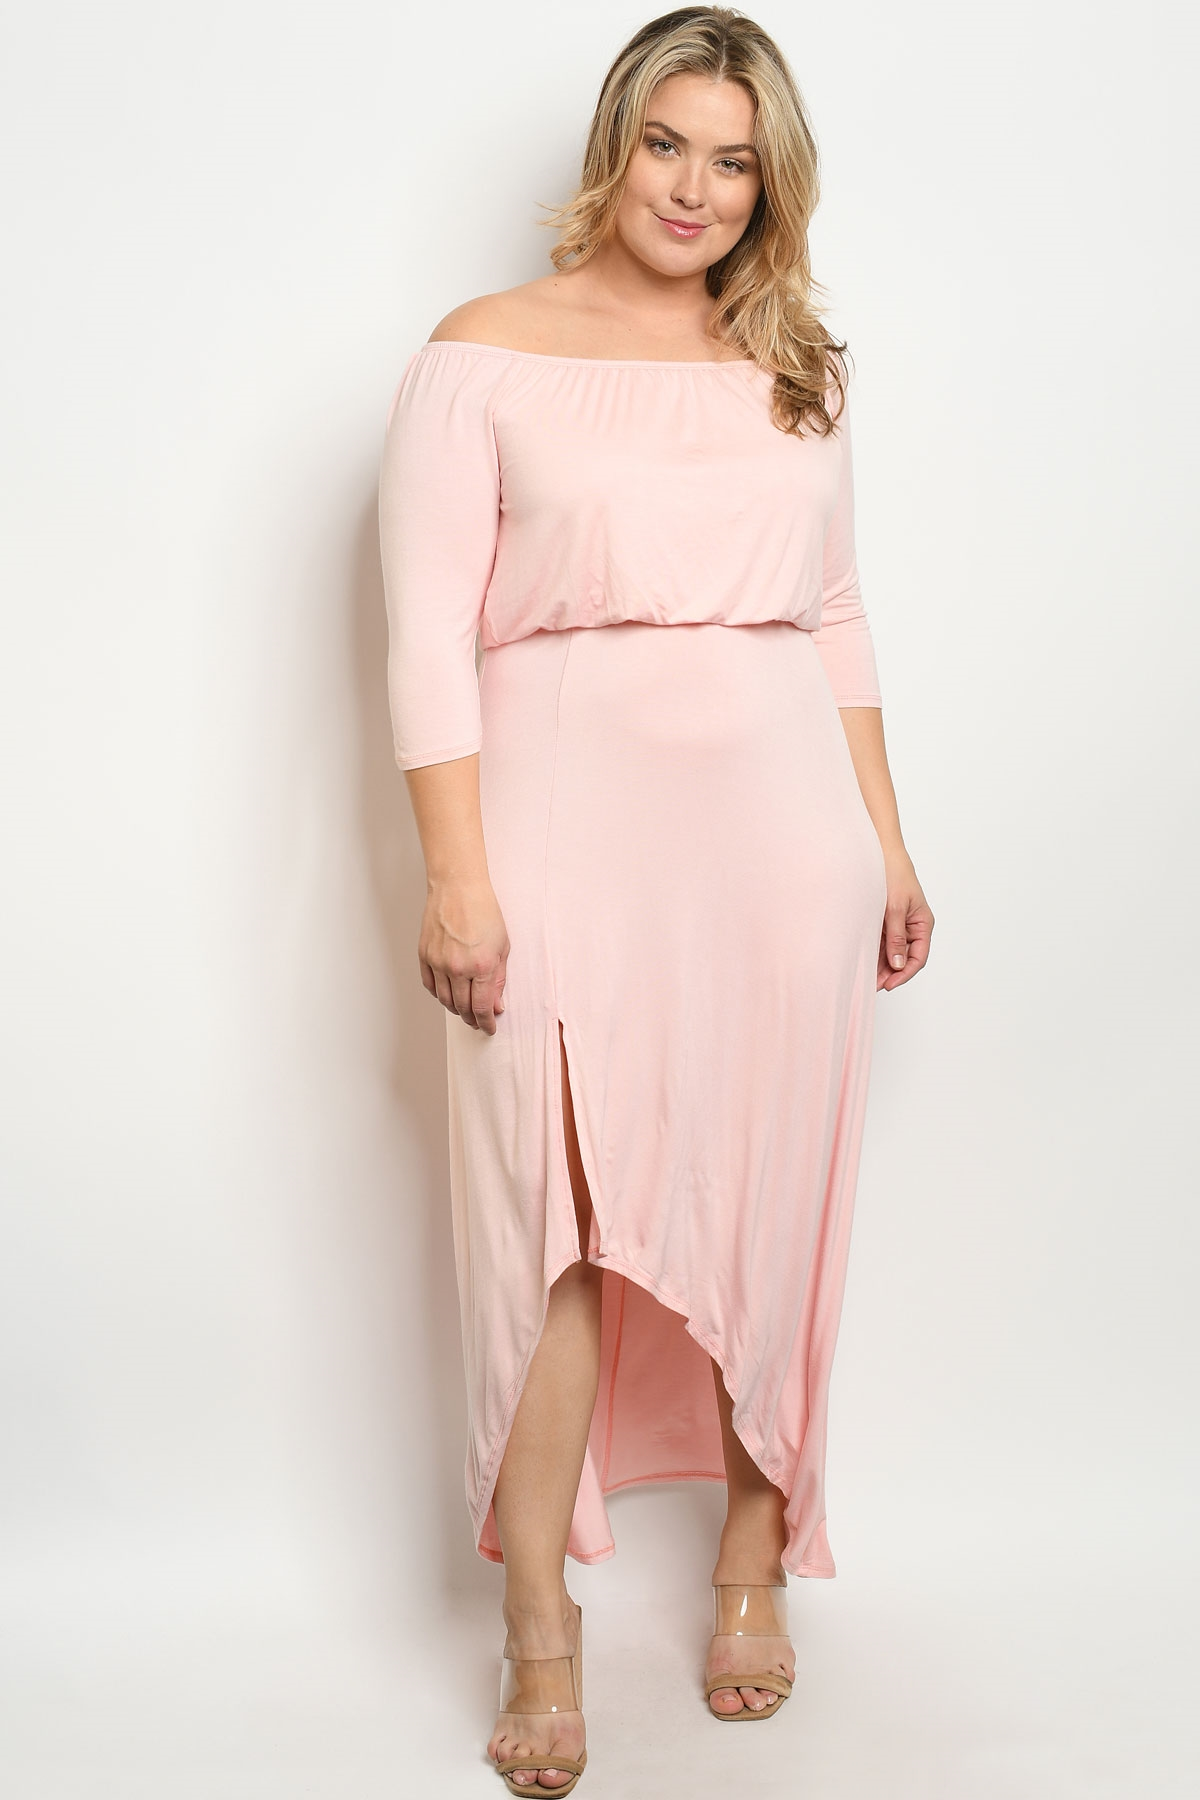 C100-A-3-D7905X BLUSH PLUS SIZE DRESS 2-2-2